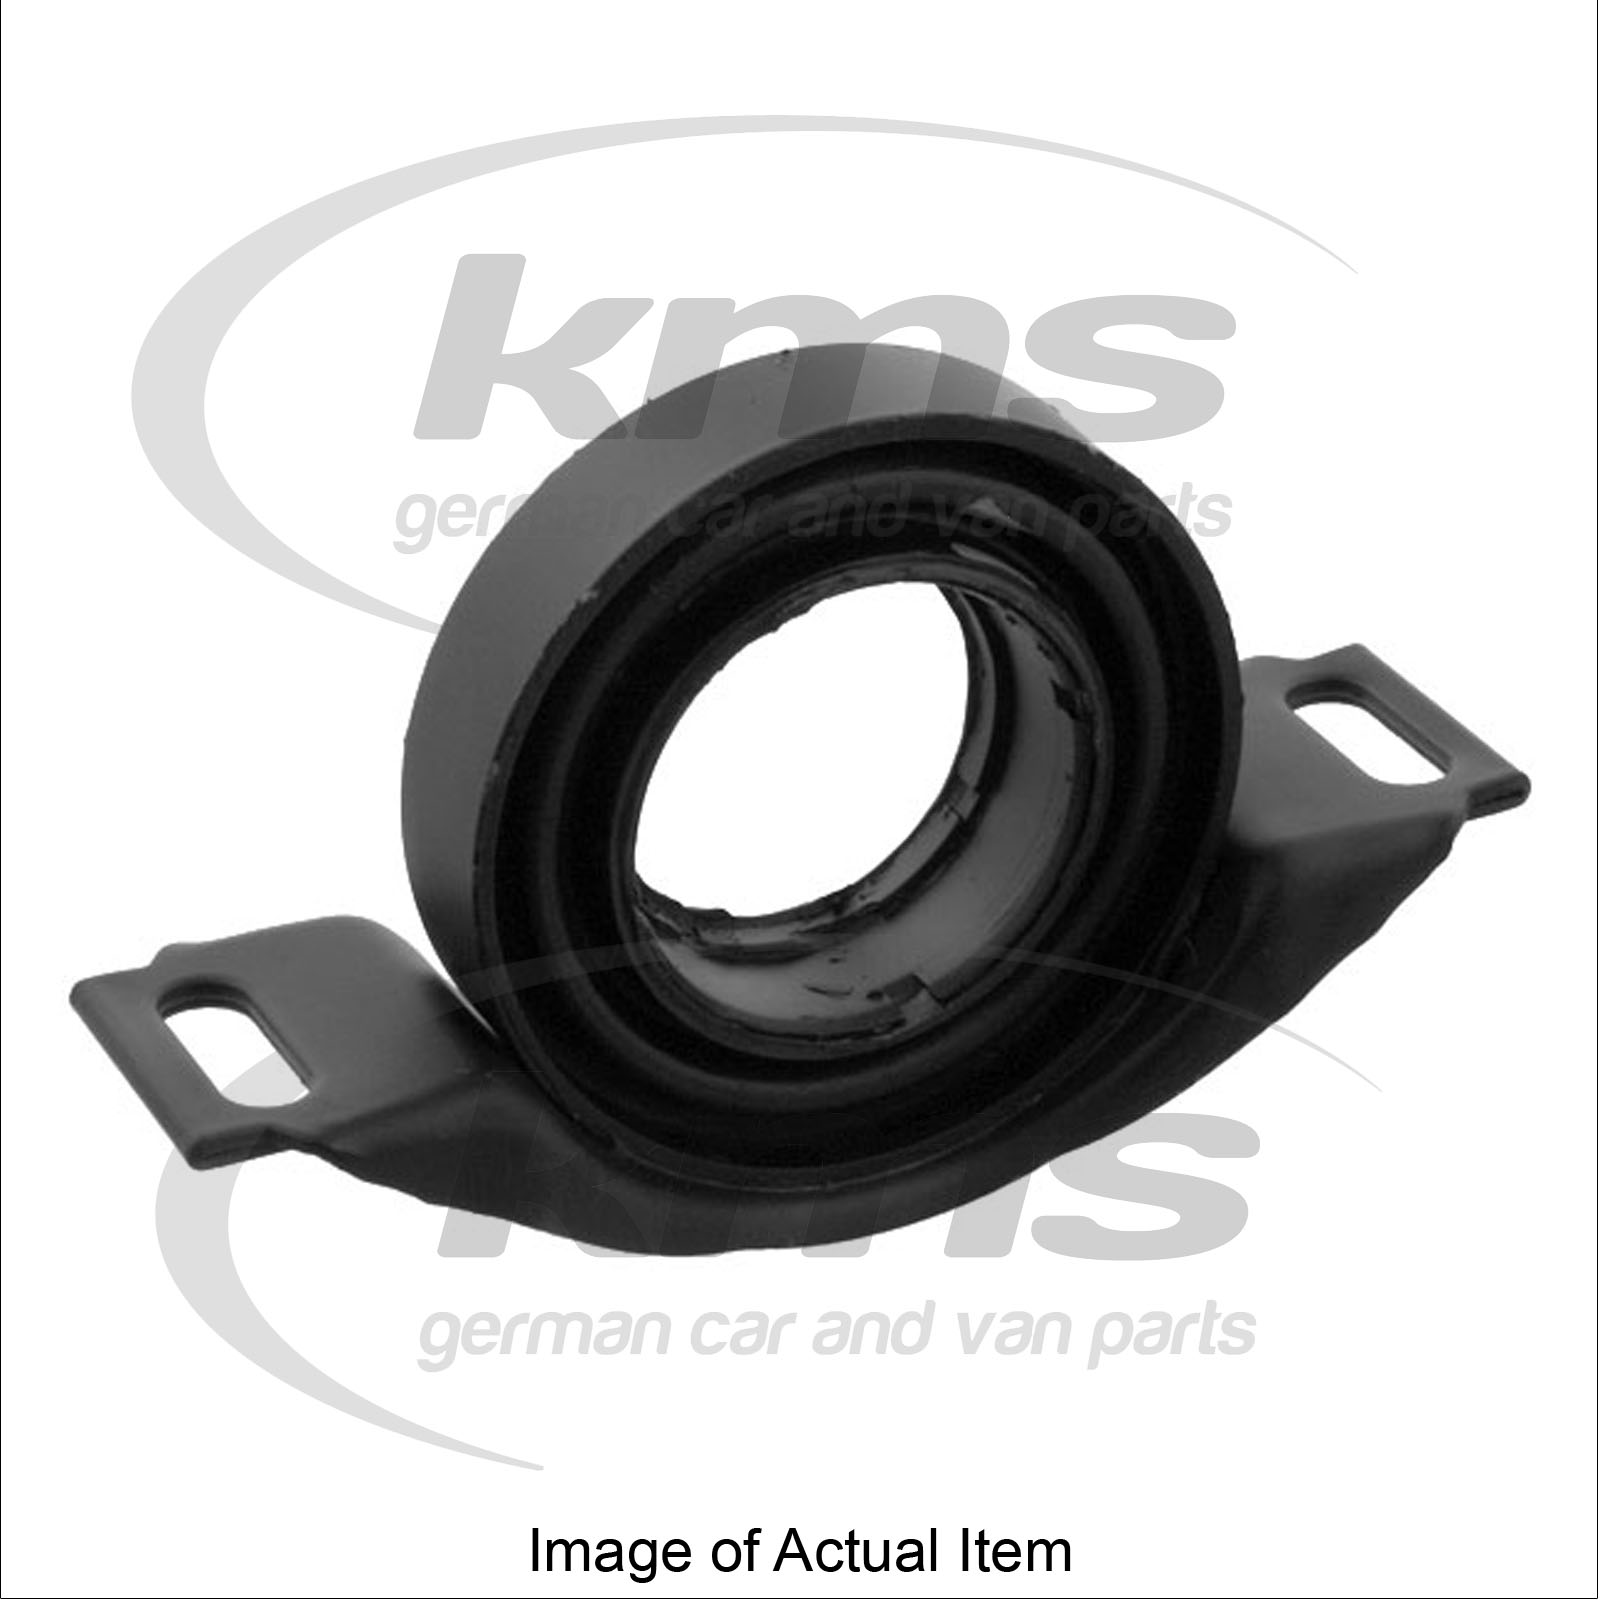 Propshaft support mercedes benz c class saloon c180 w202 1 for Mercedes benz support